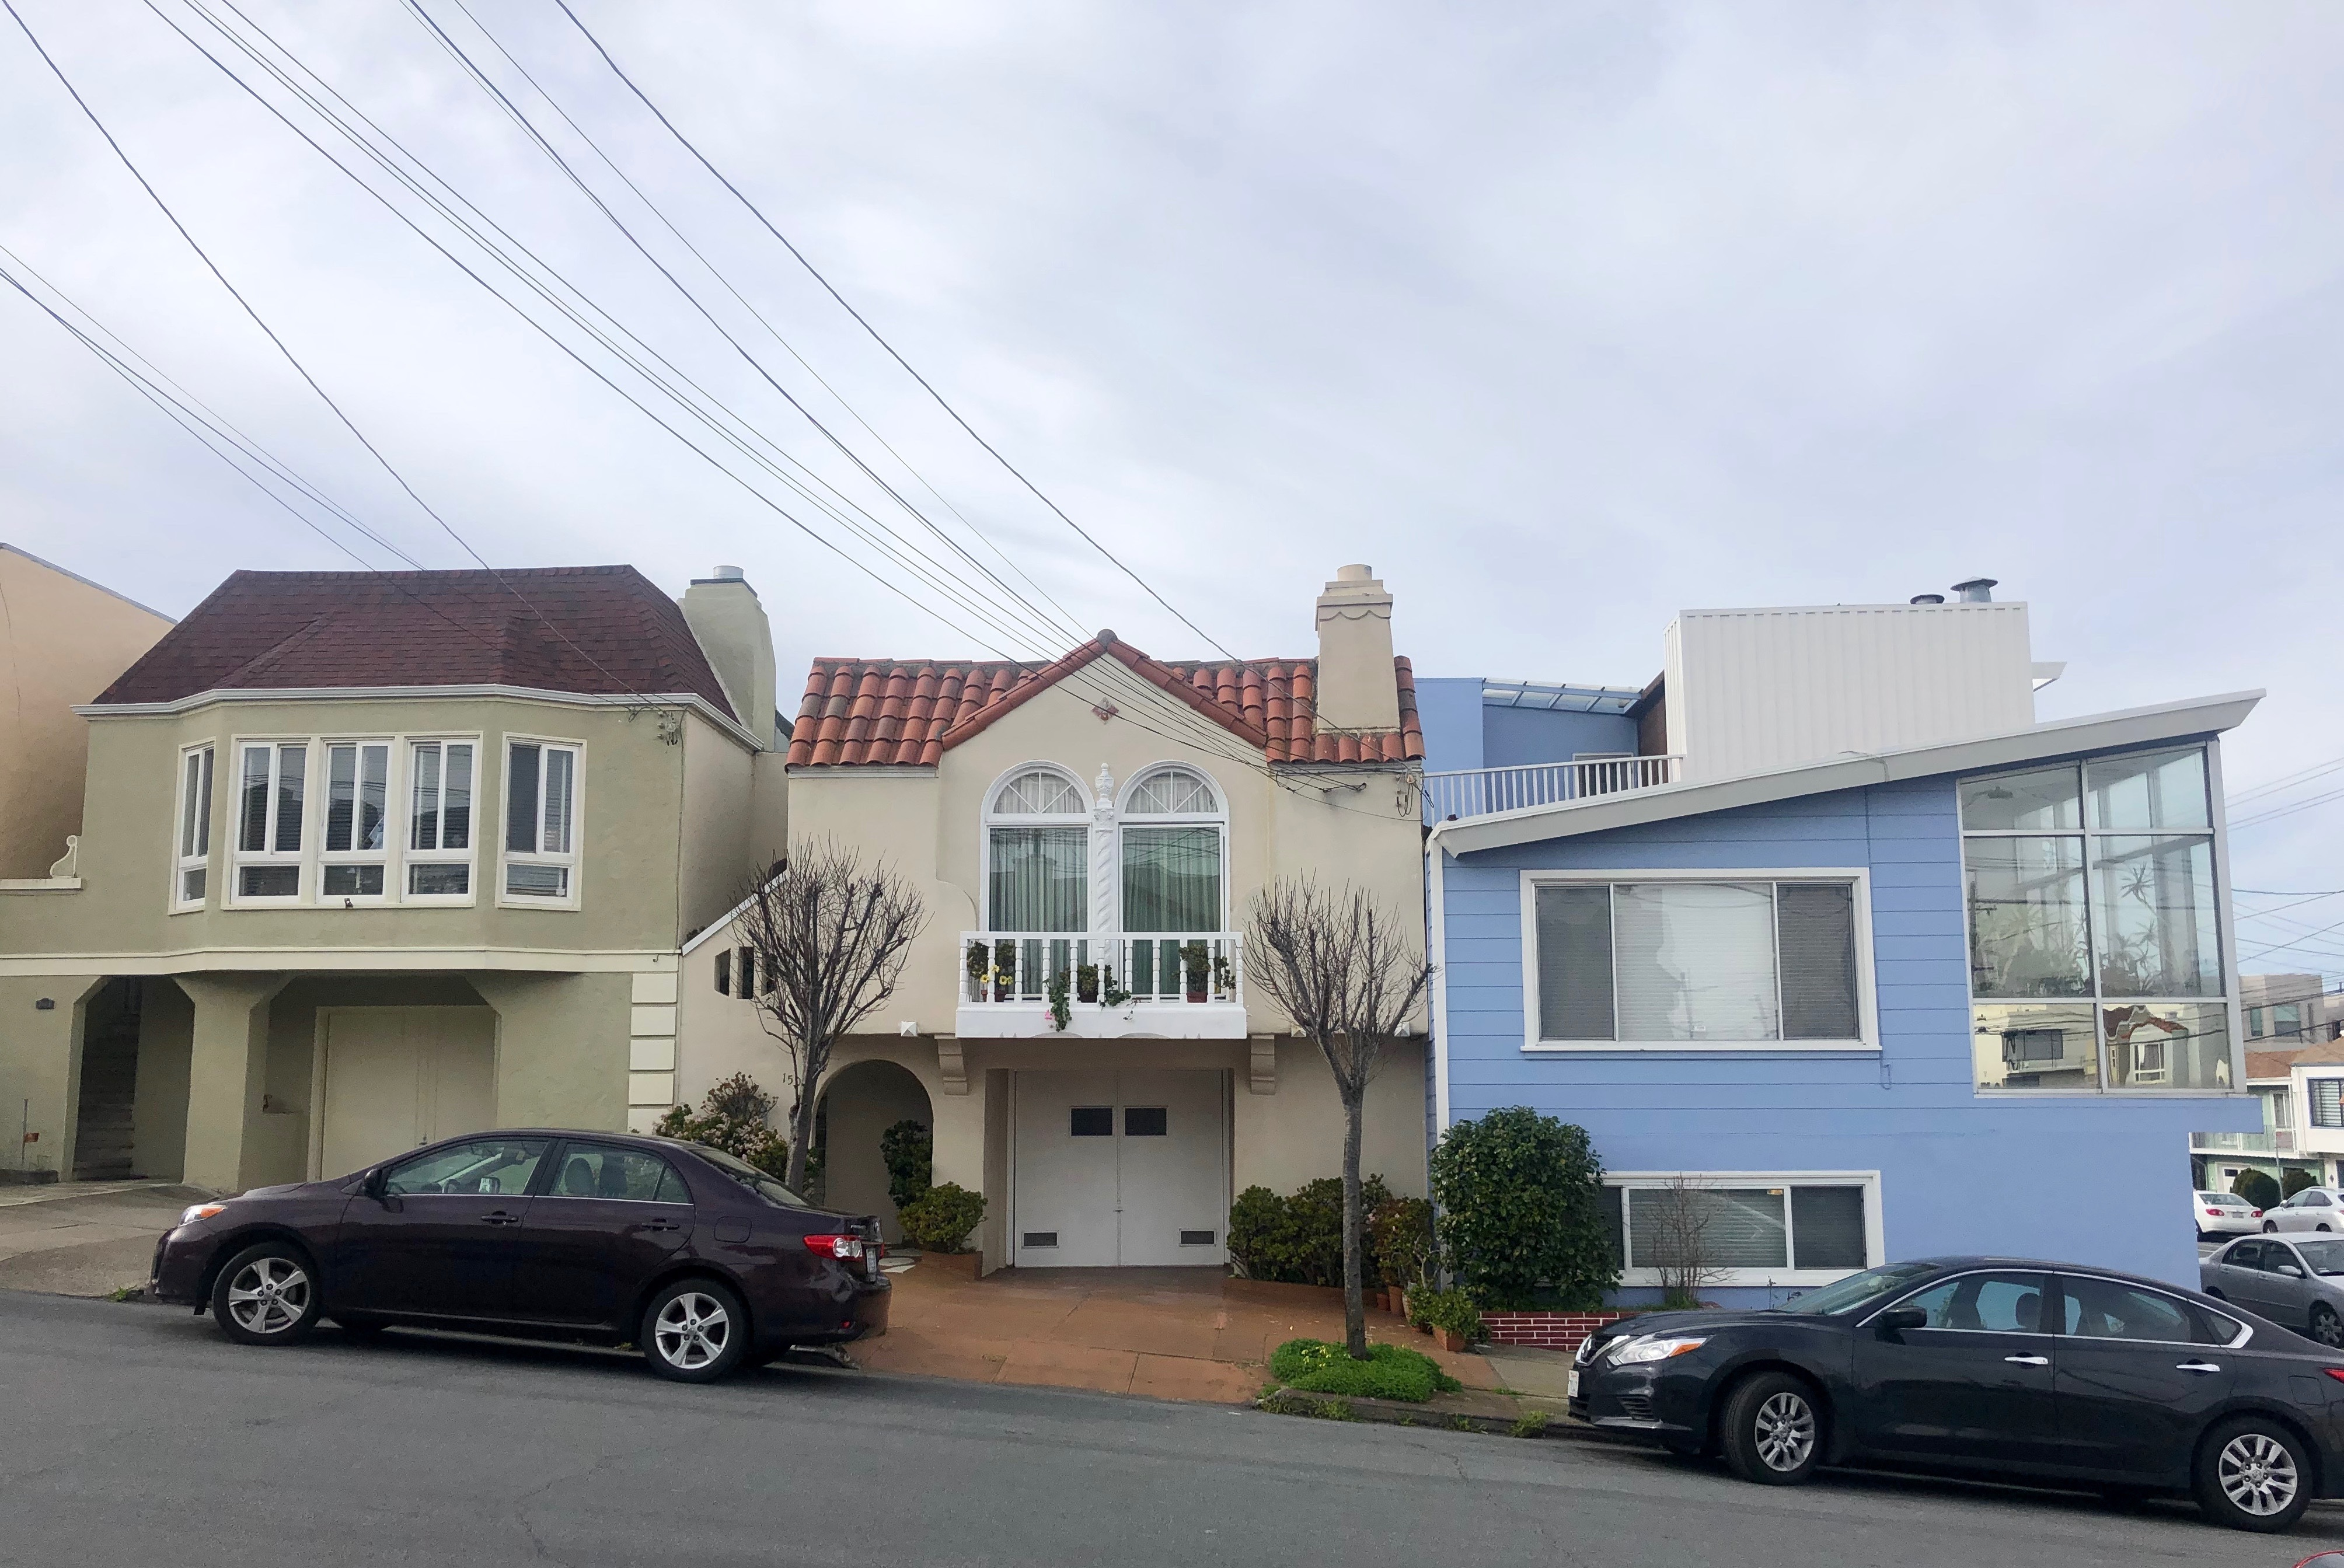 Three colorful single-family houses lining a street in San Francisco.